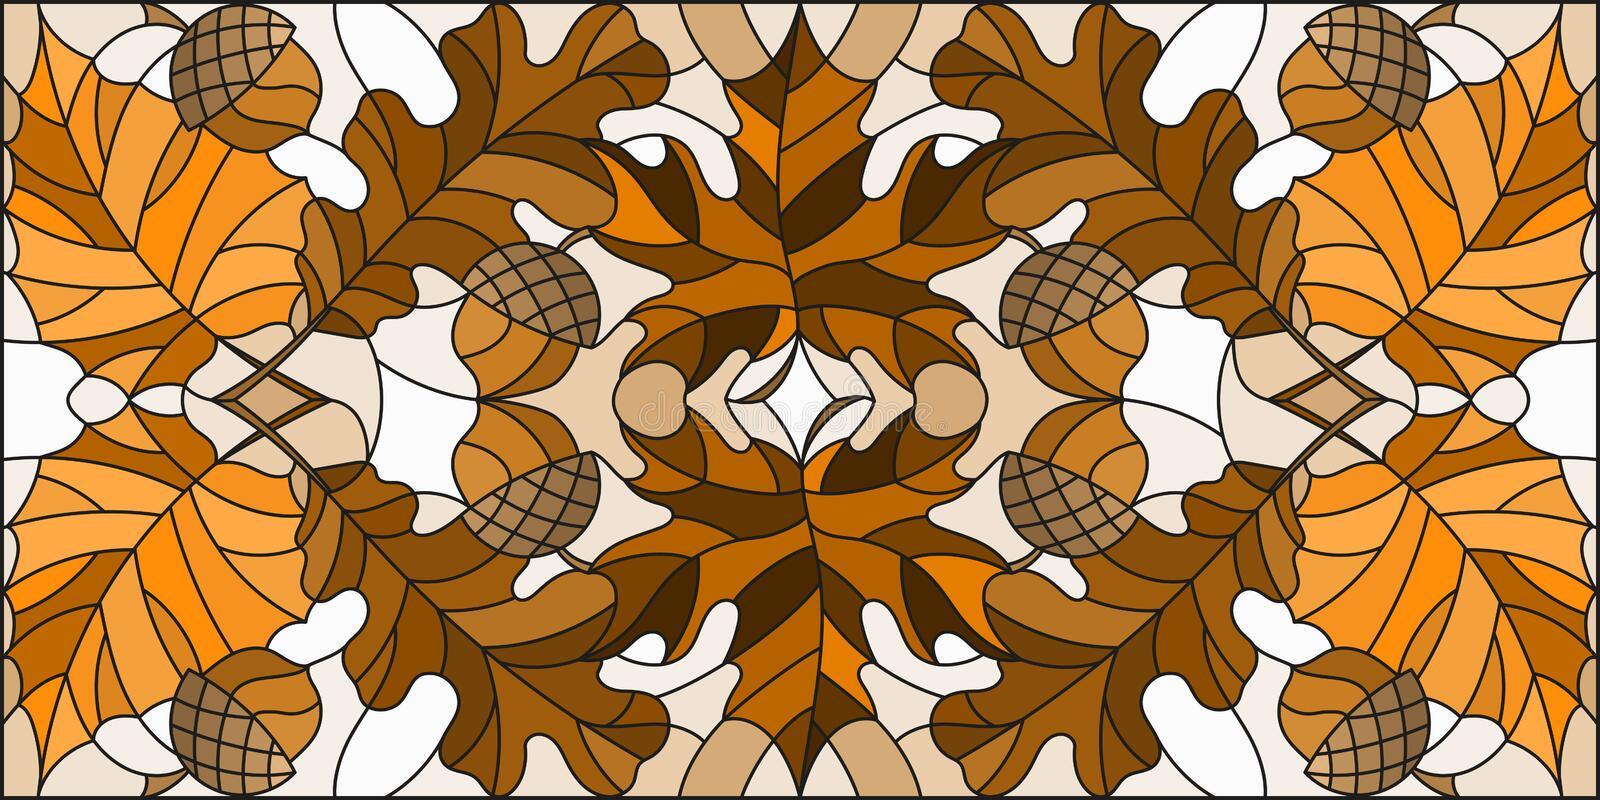 Stained glass illustration  on the theme of autumn, leaves, oak, maple , aspen and acorns on a light background,horizontal orienta. Illustration in stained glass stock illustration